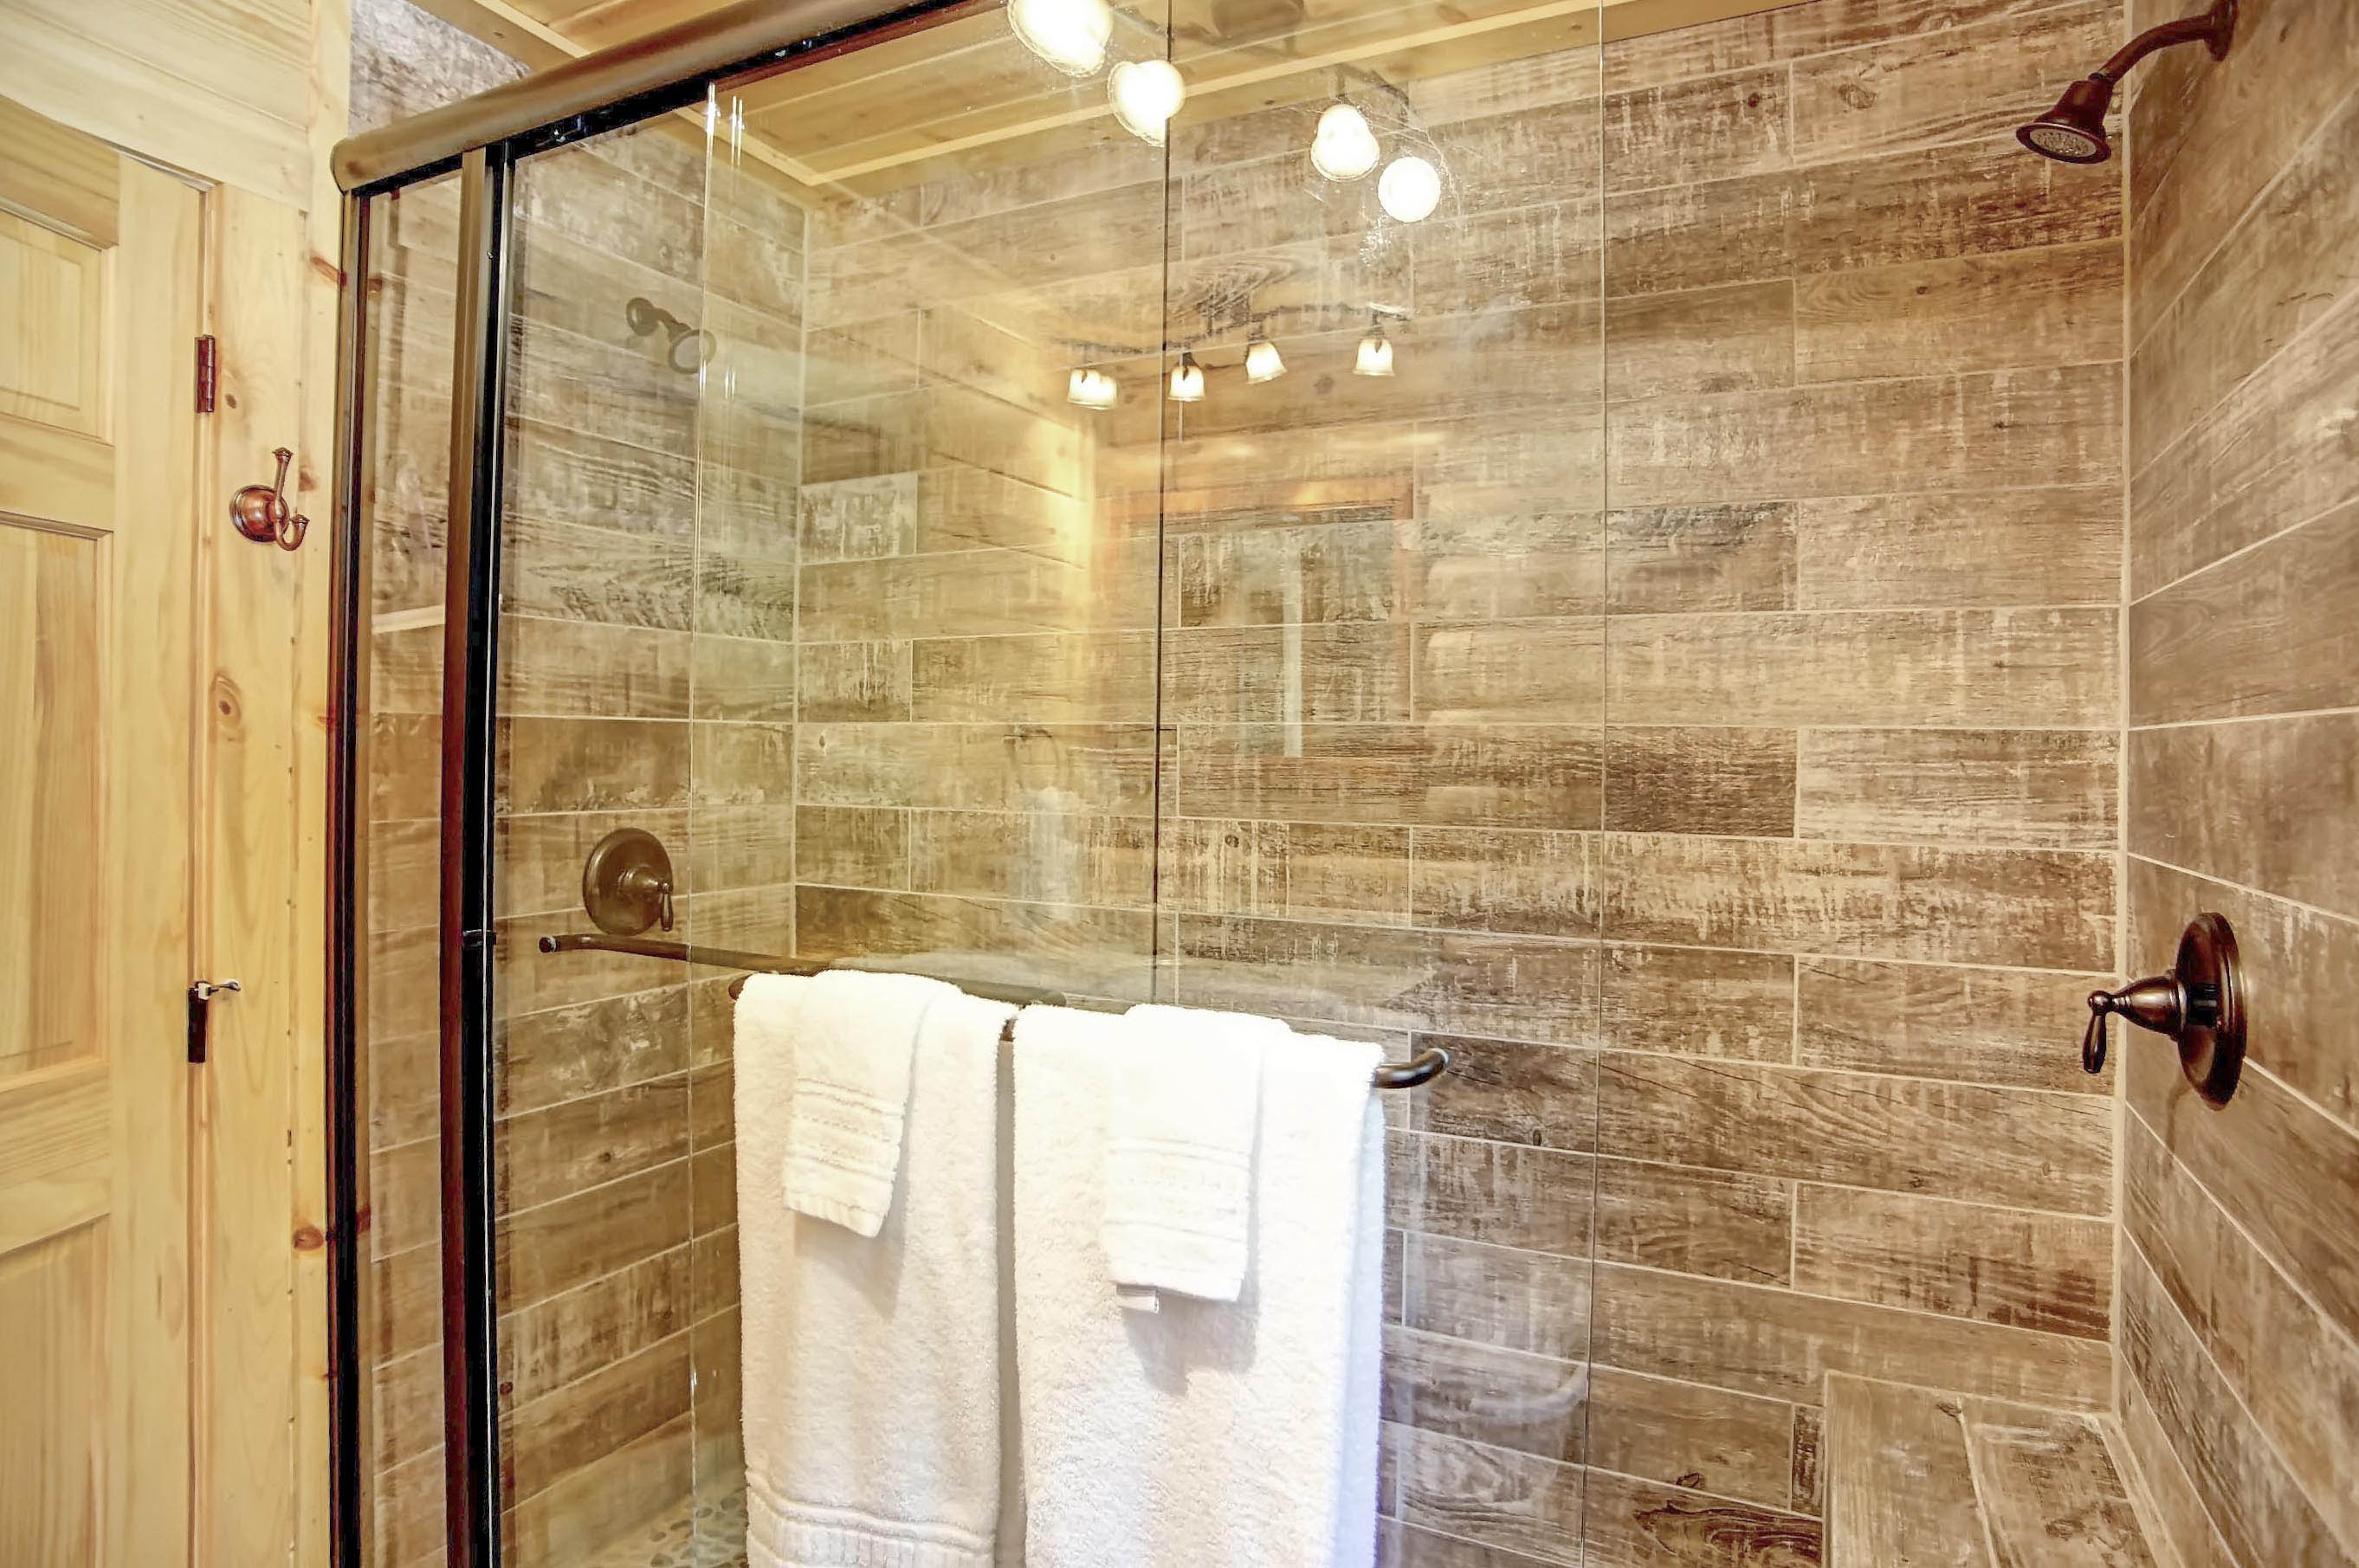 Shower - Large walk-in shower with double shower heads